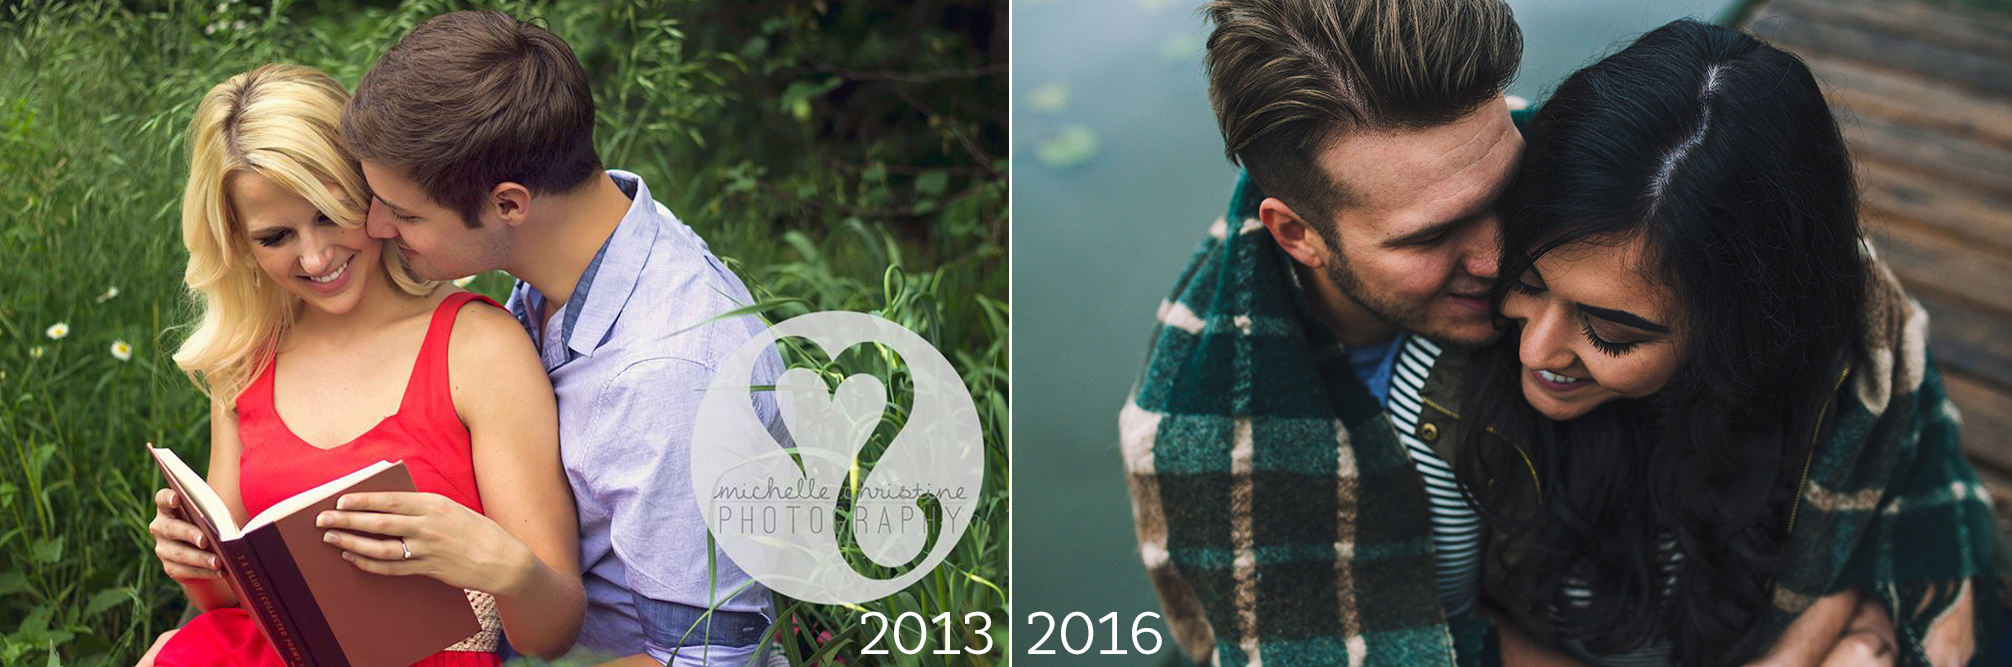 Before-After-Engagement-Couple-2013-2016